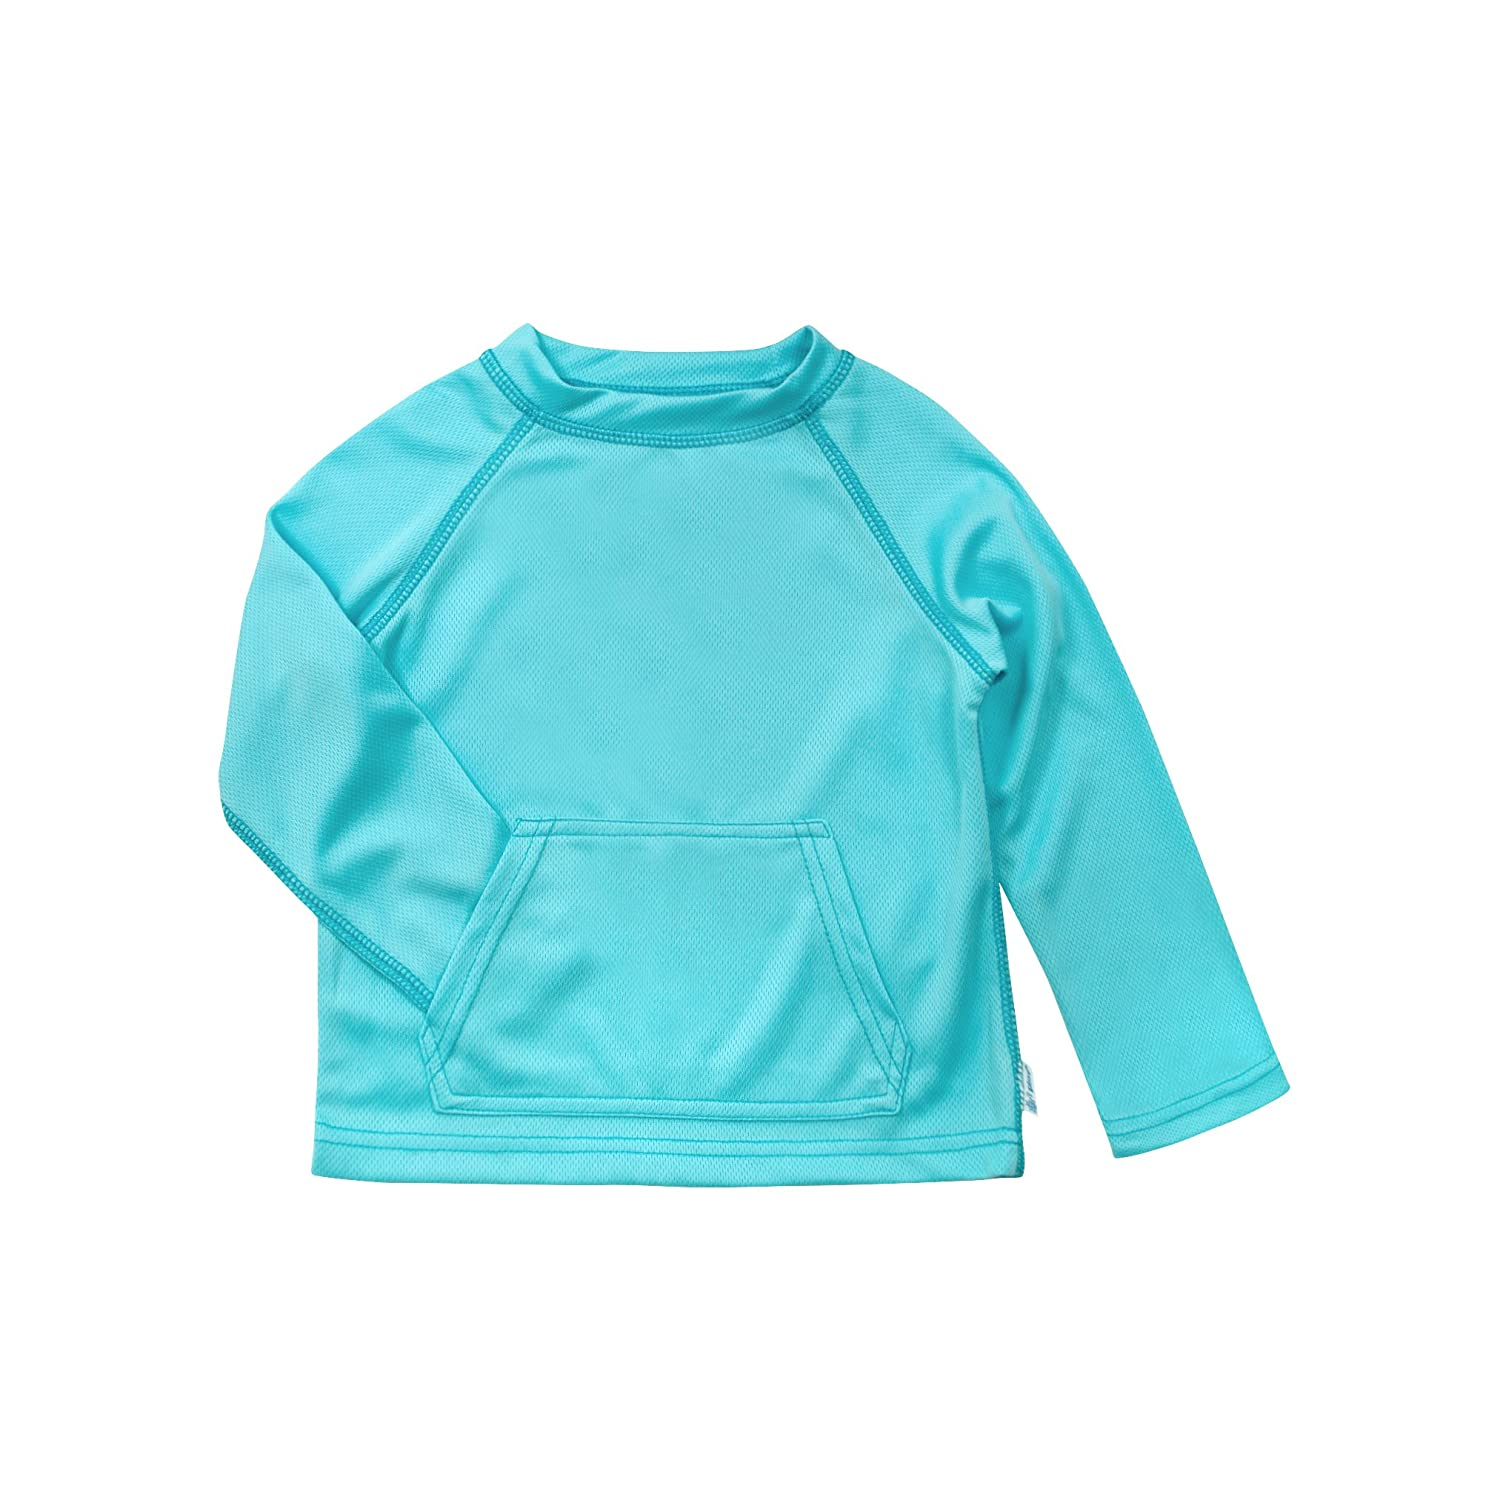 I-Play Baby-Girls Breatheasy Sun Protection Shirt i play Children' s Apparel 750101